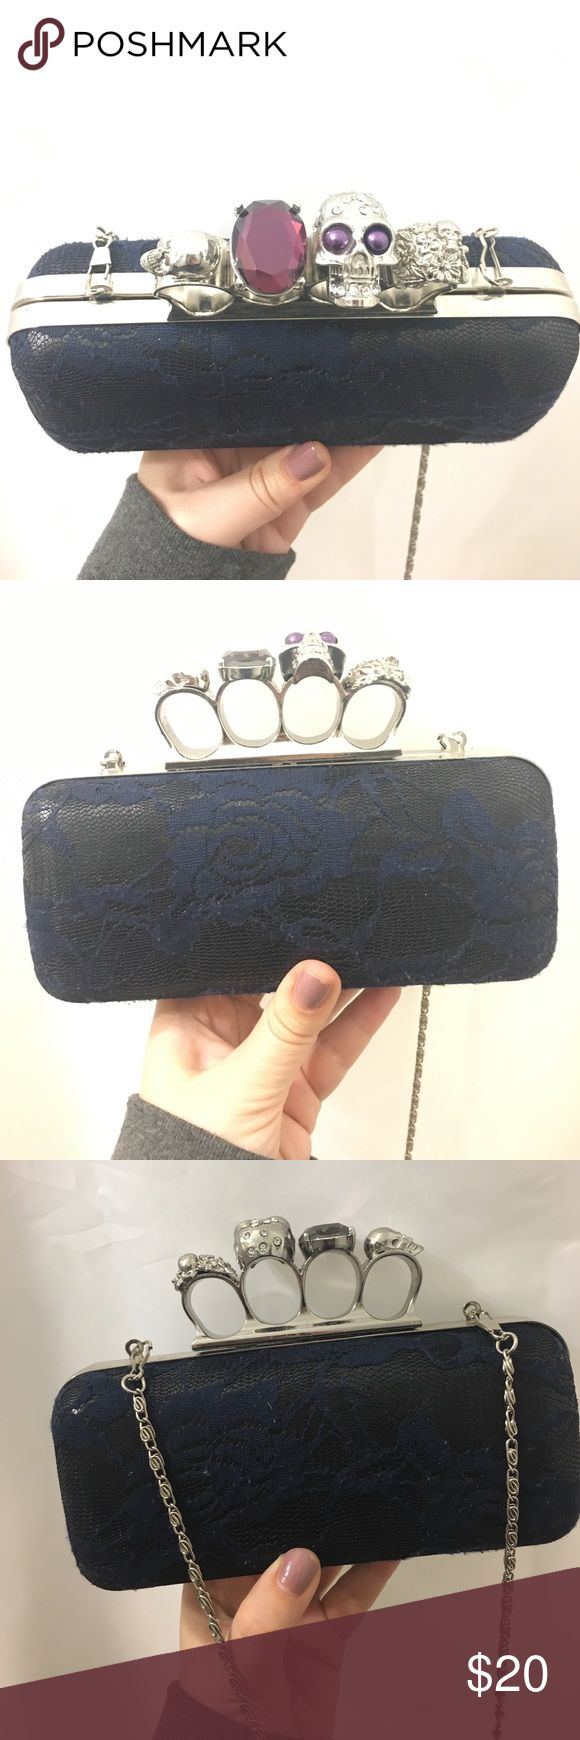 Patricia Field rock n roll knuckle bag Patricia field rock n roll knuckle bag- black bag with navy lace flowers- detachable chain- can be worn as a clutch or a side bag patricia fields Bags Clutches & Wristlets